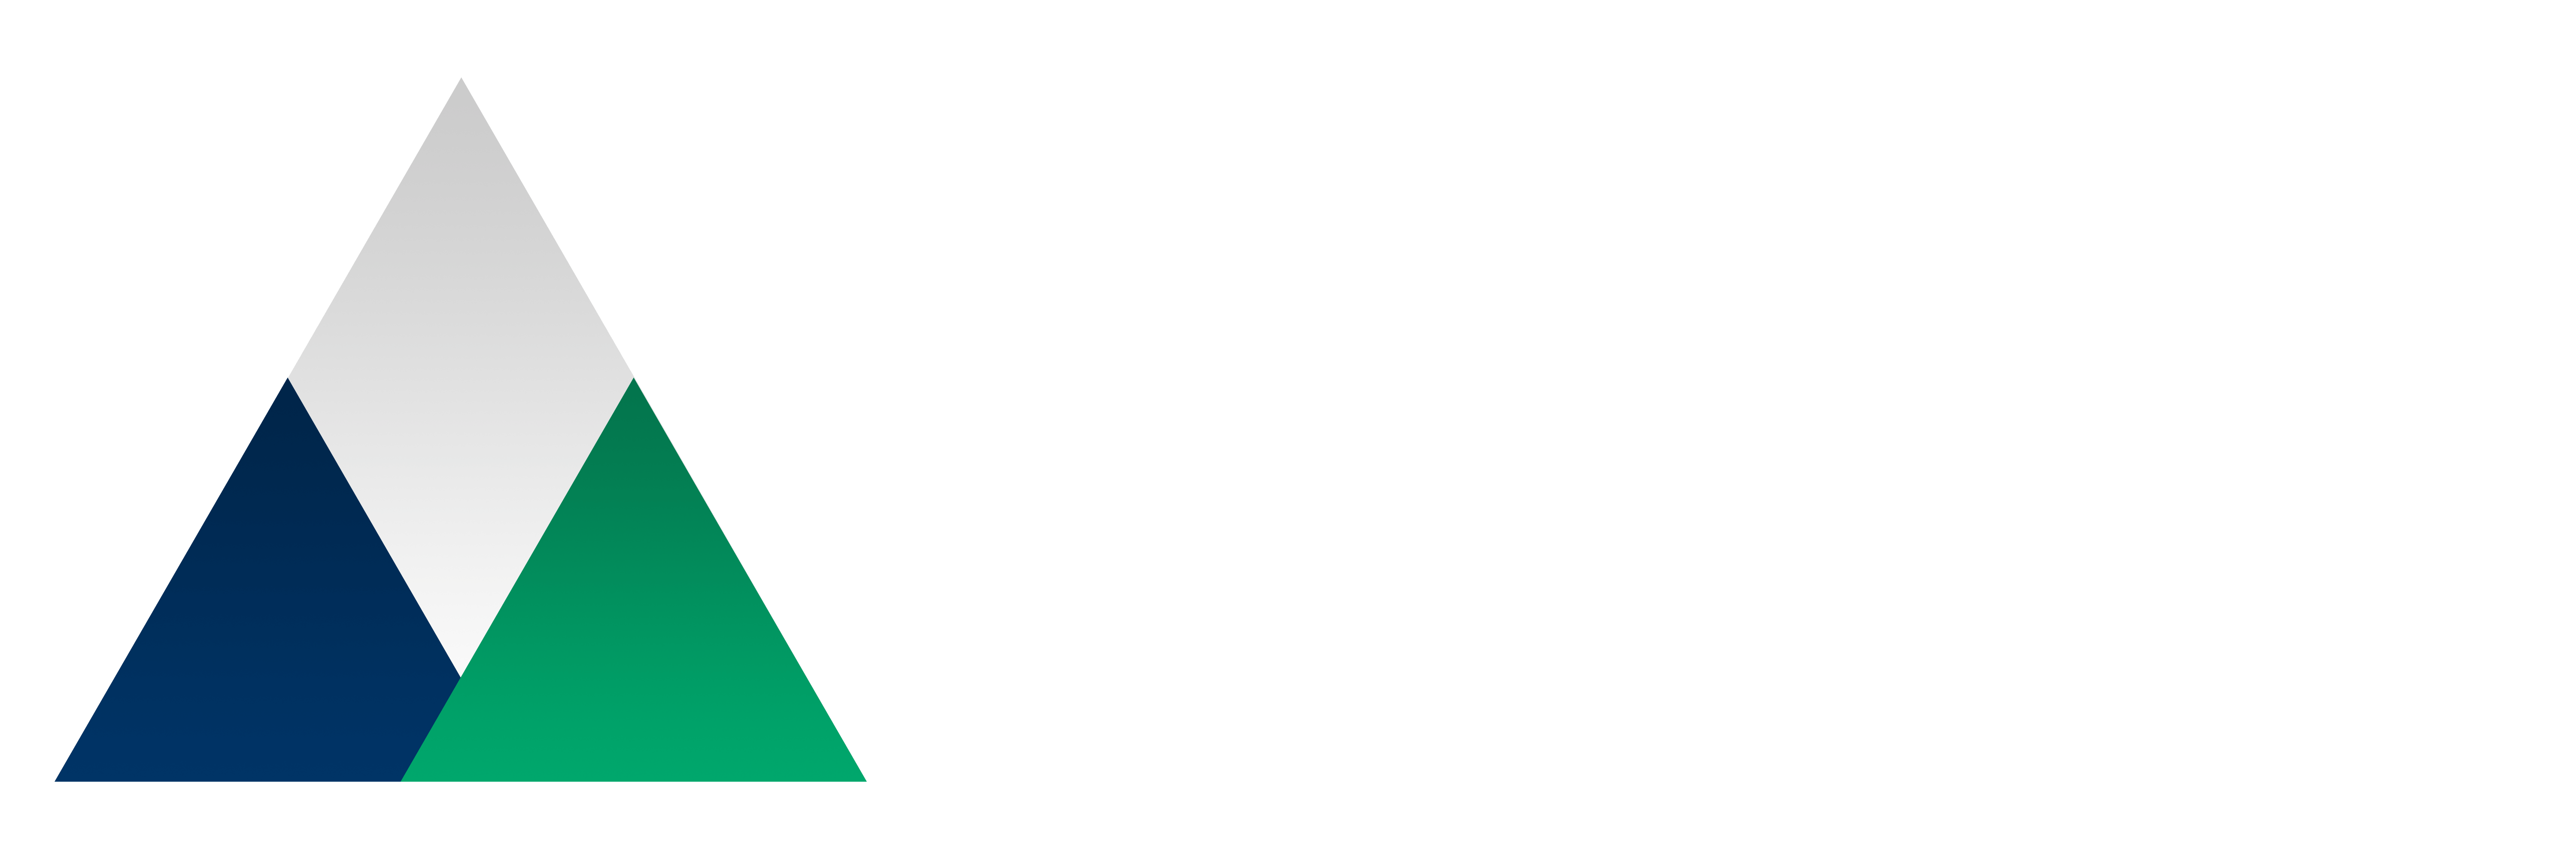 Aycock Marketing